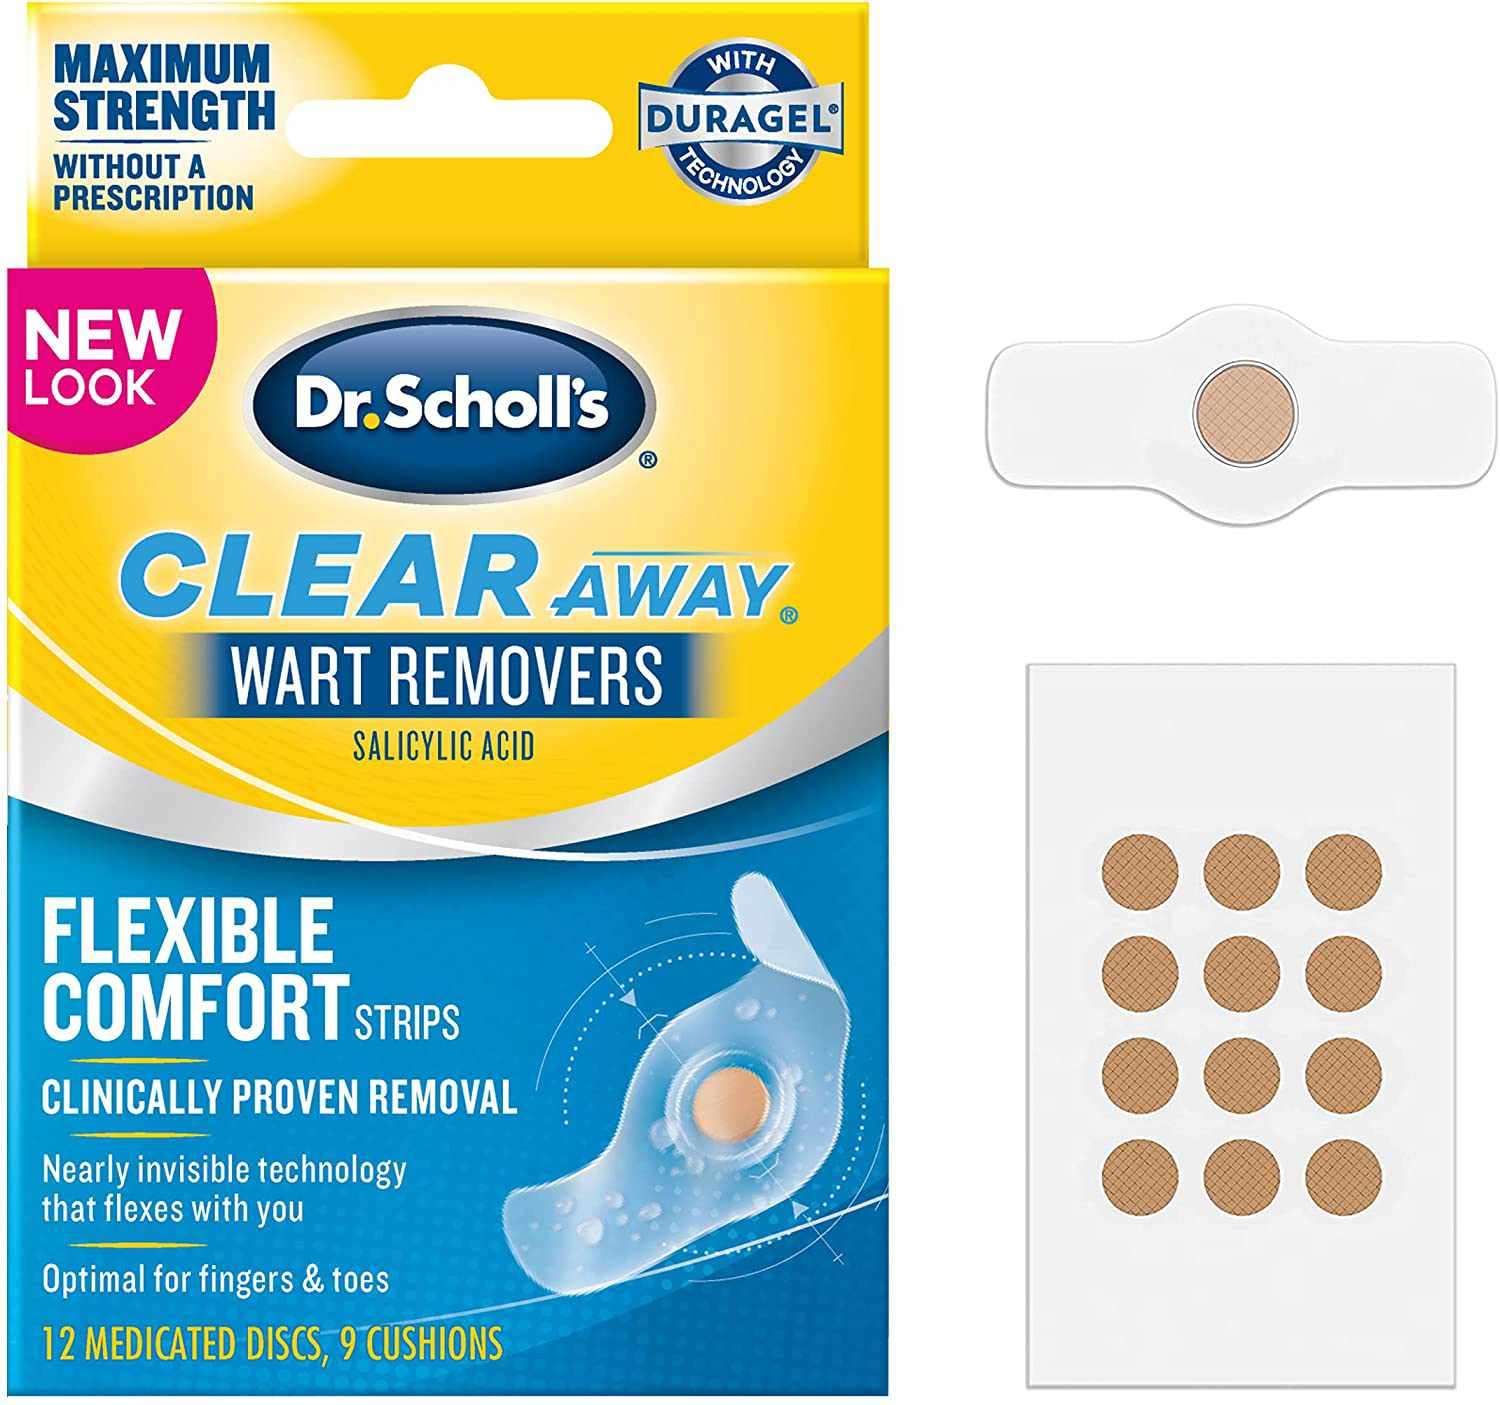 Dr. Scholl's ClearAway Wart Remover with Duragel Technology